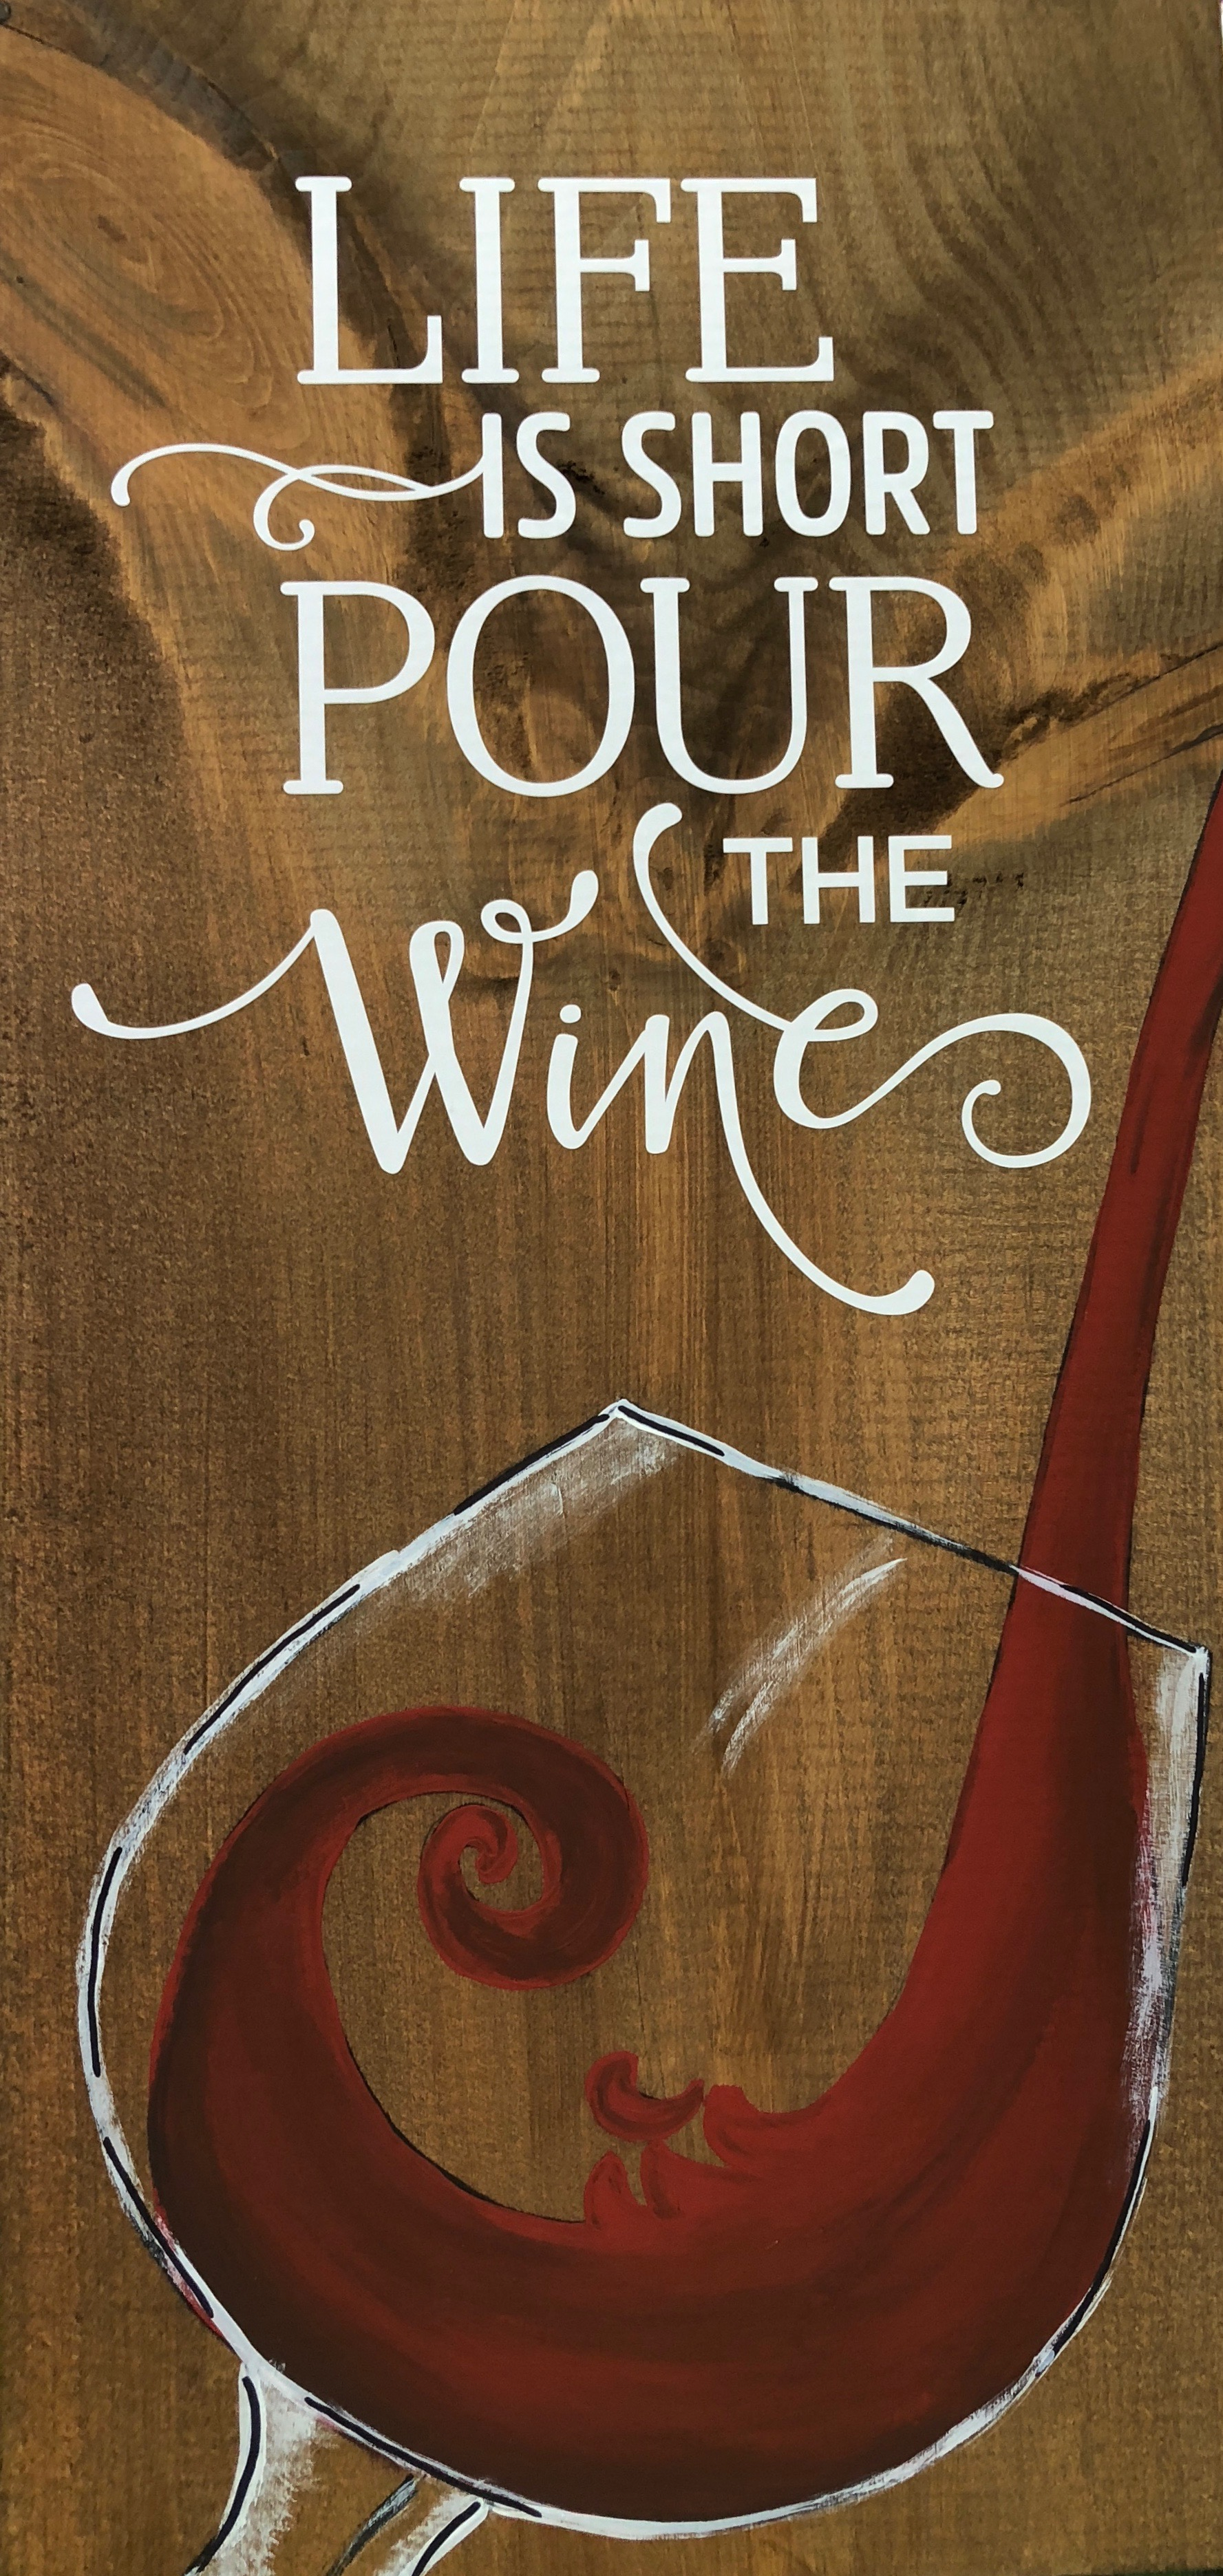 Pour the Wine - 10x19""